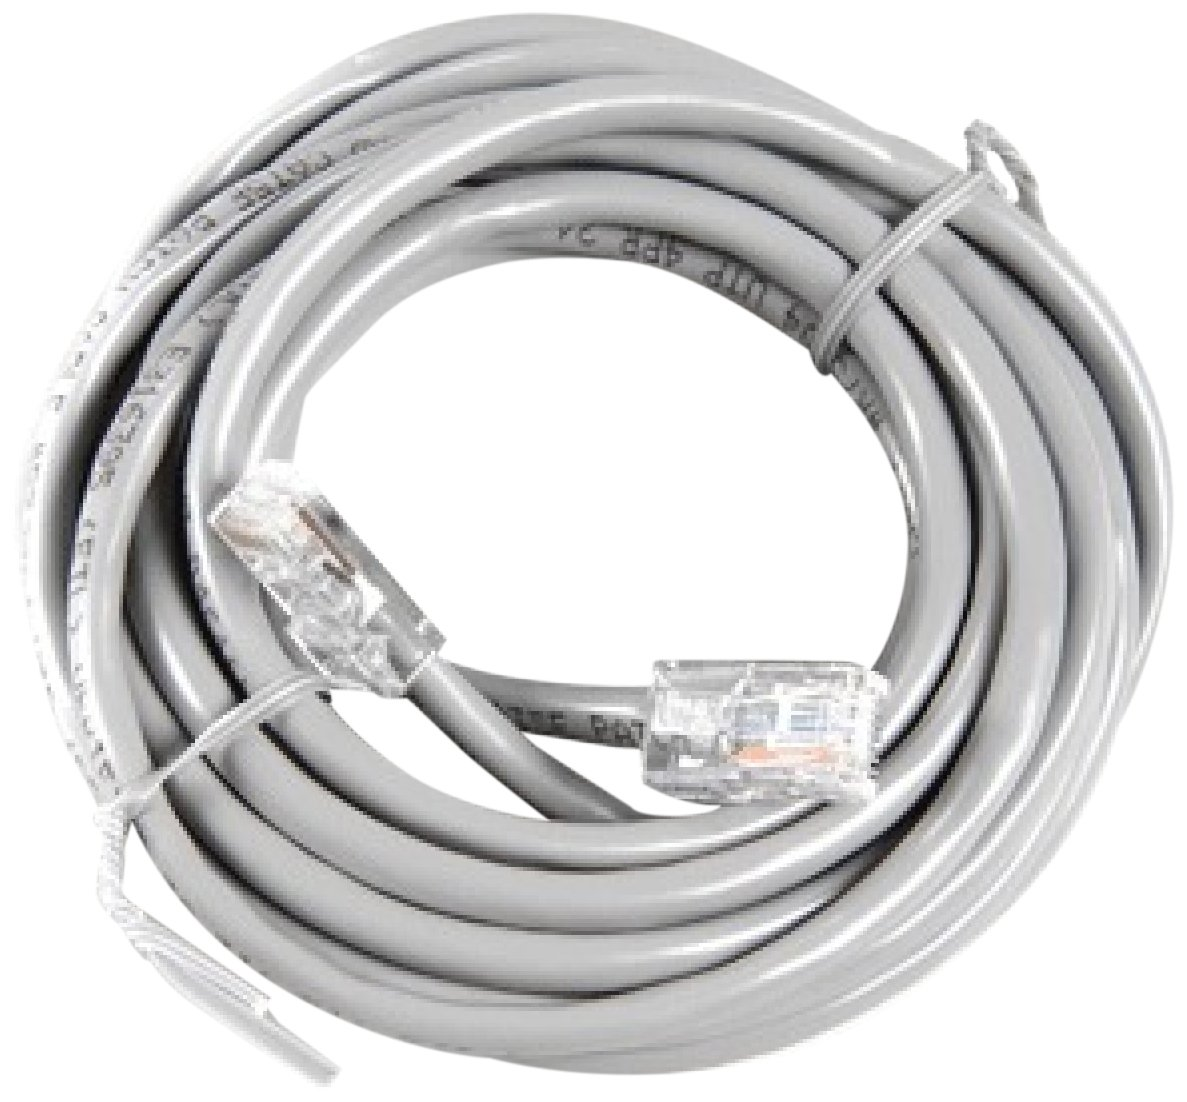 XANTREX 809-0940 NETWORK CABLE 25 FT FOR SCP REMOTE PANEL